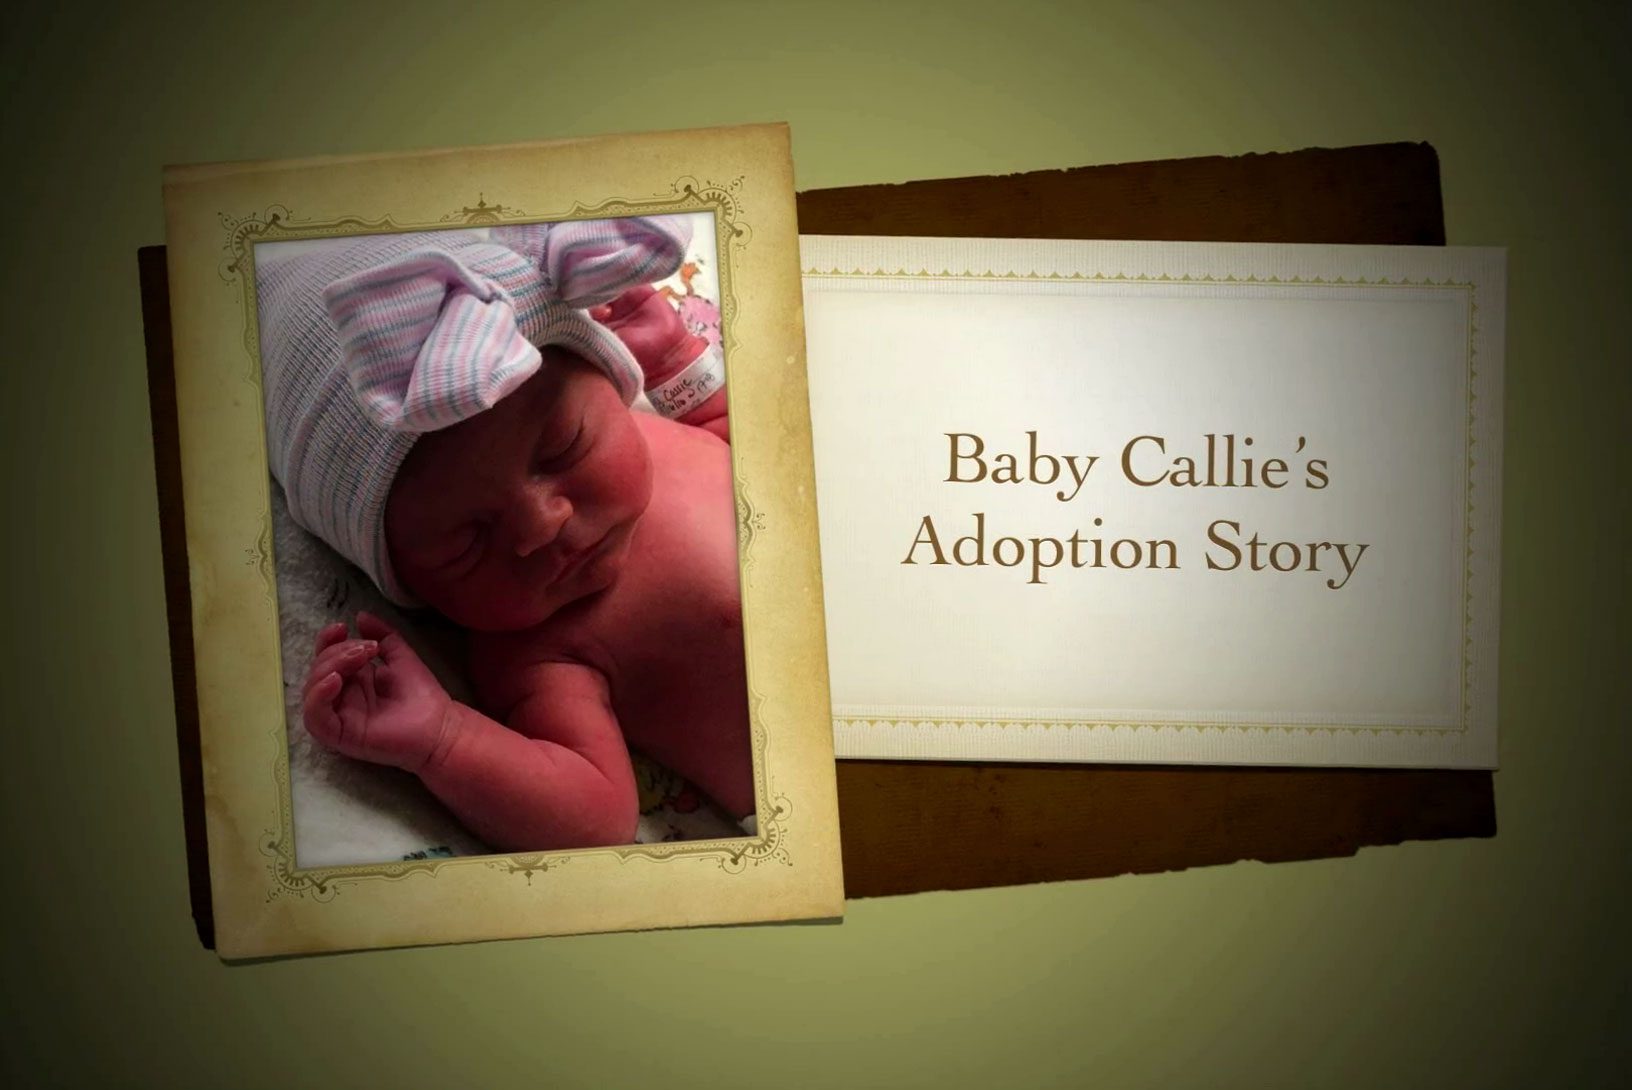 Baby Callie's Adoption Story